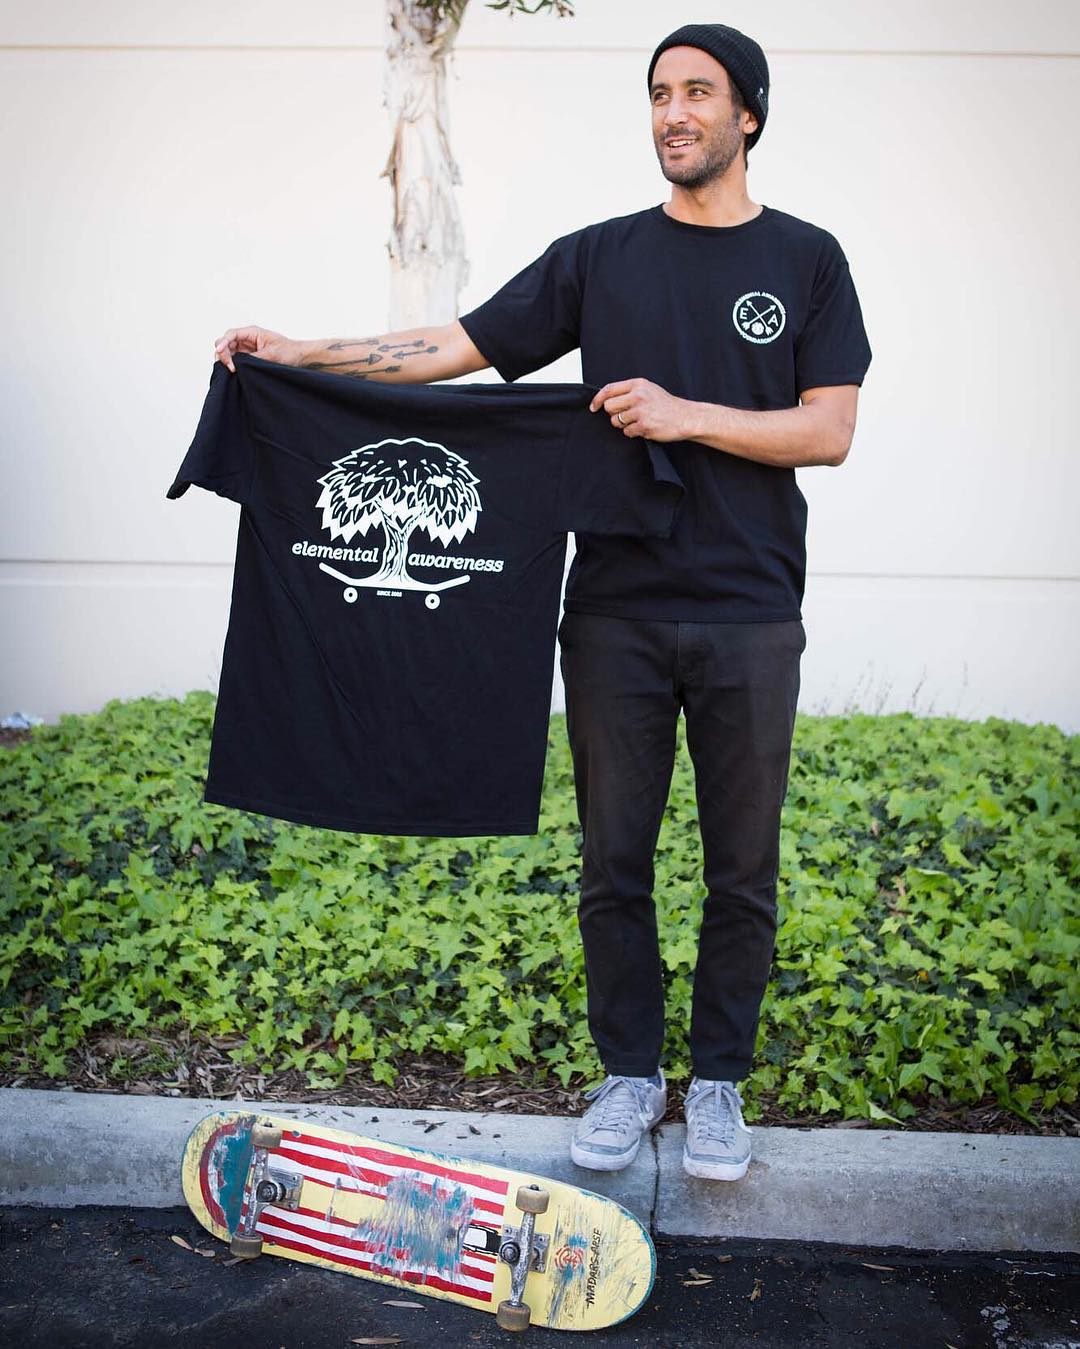 Our dude Chad Tim Tim (@7im7im) just got his hands on the latest @Elementalawareness tees, and you should too! 100% of the profits help connect kids to nature through skateboarding >>> More info at ElementalAwareness.org. Special thanks to our friends...